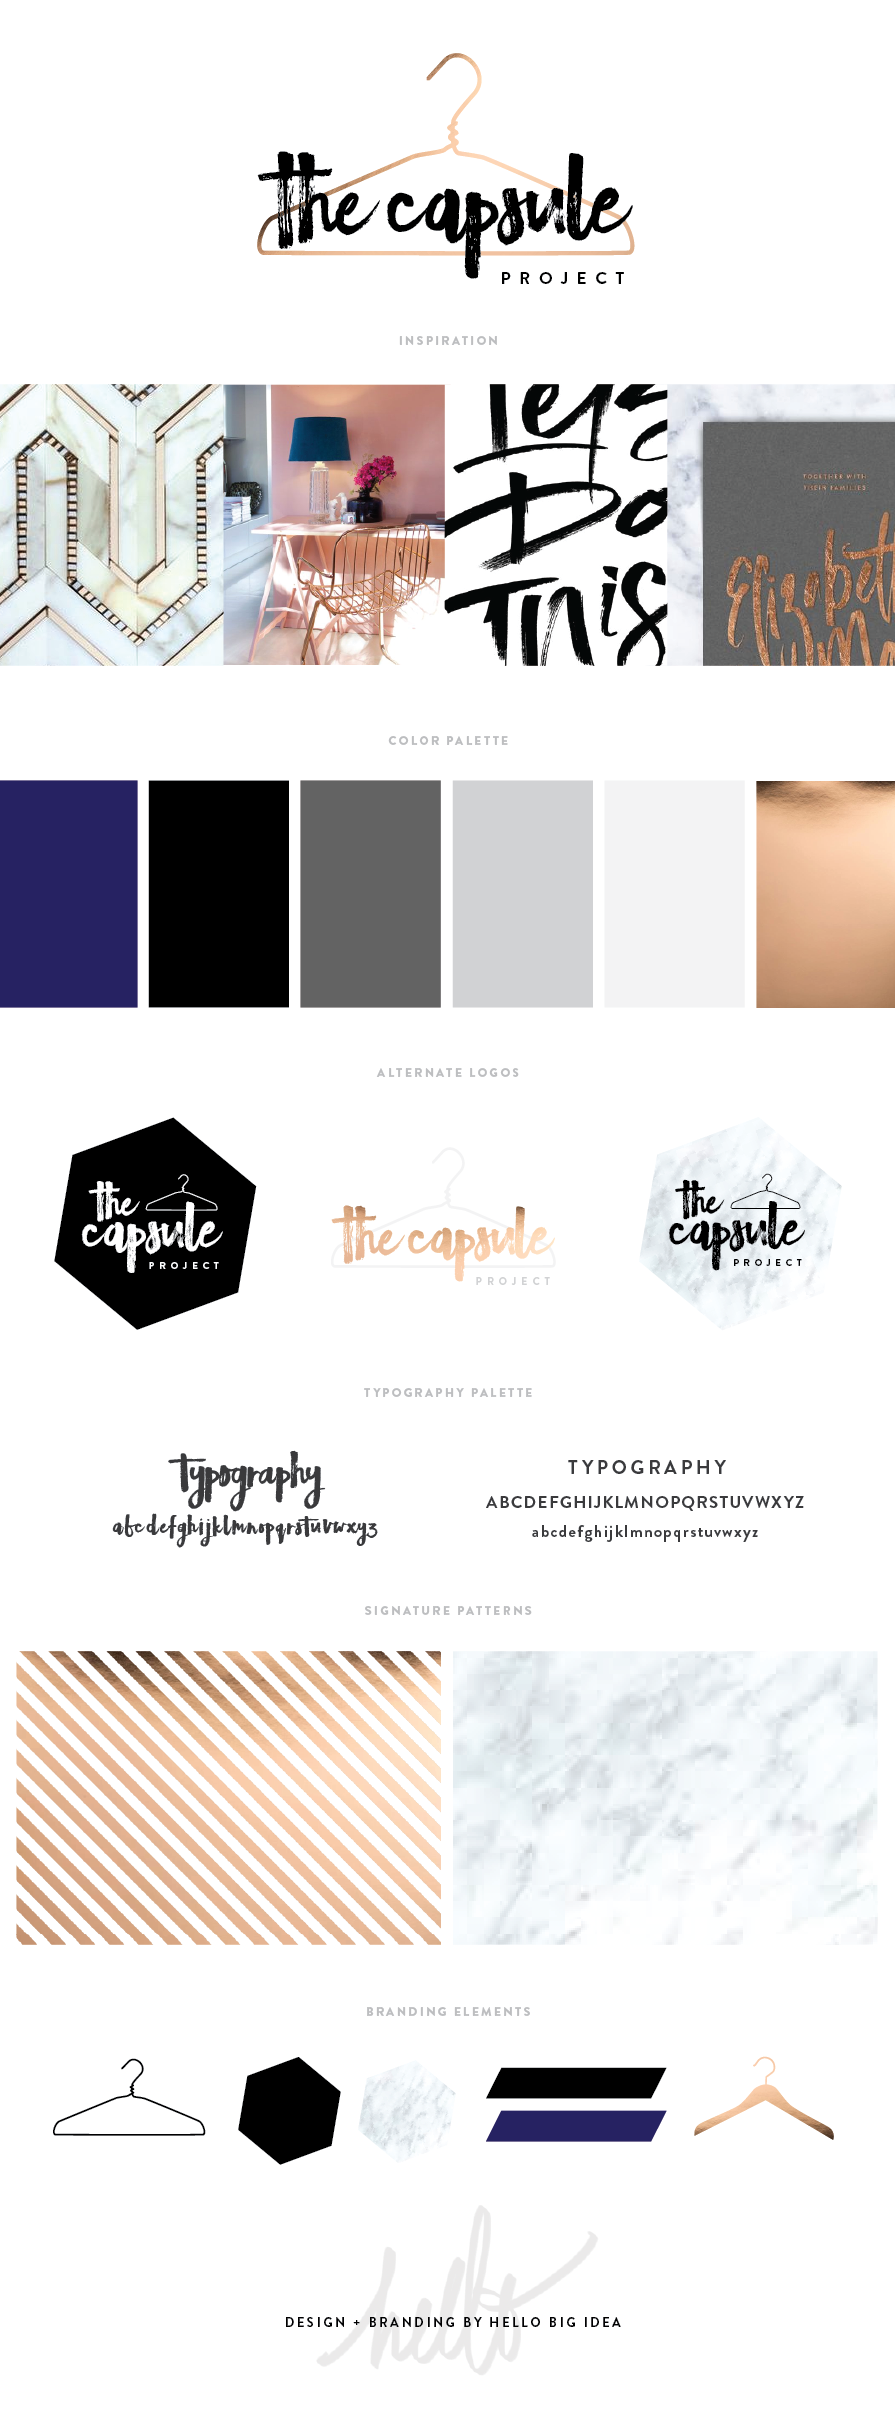 The Capsule Project Style Guide by Hello Big Idea